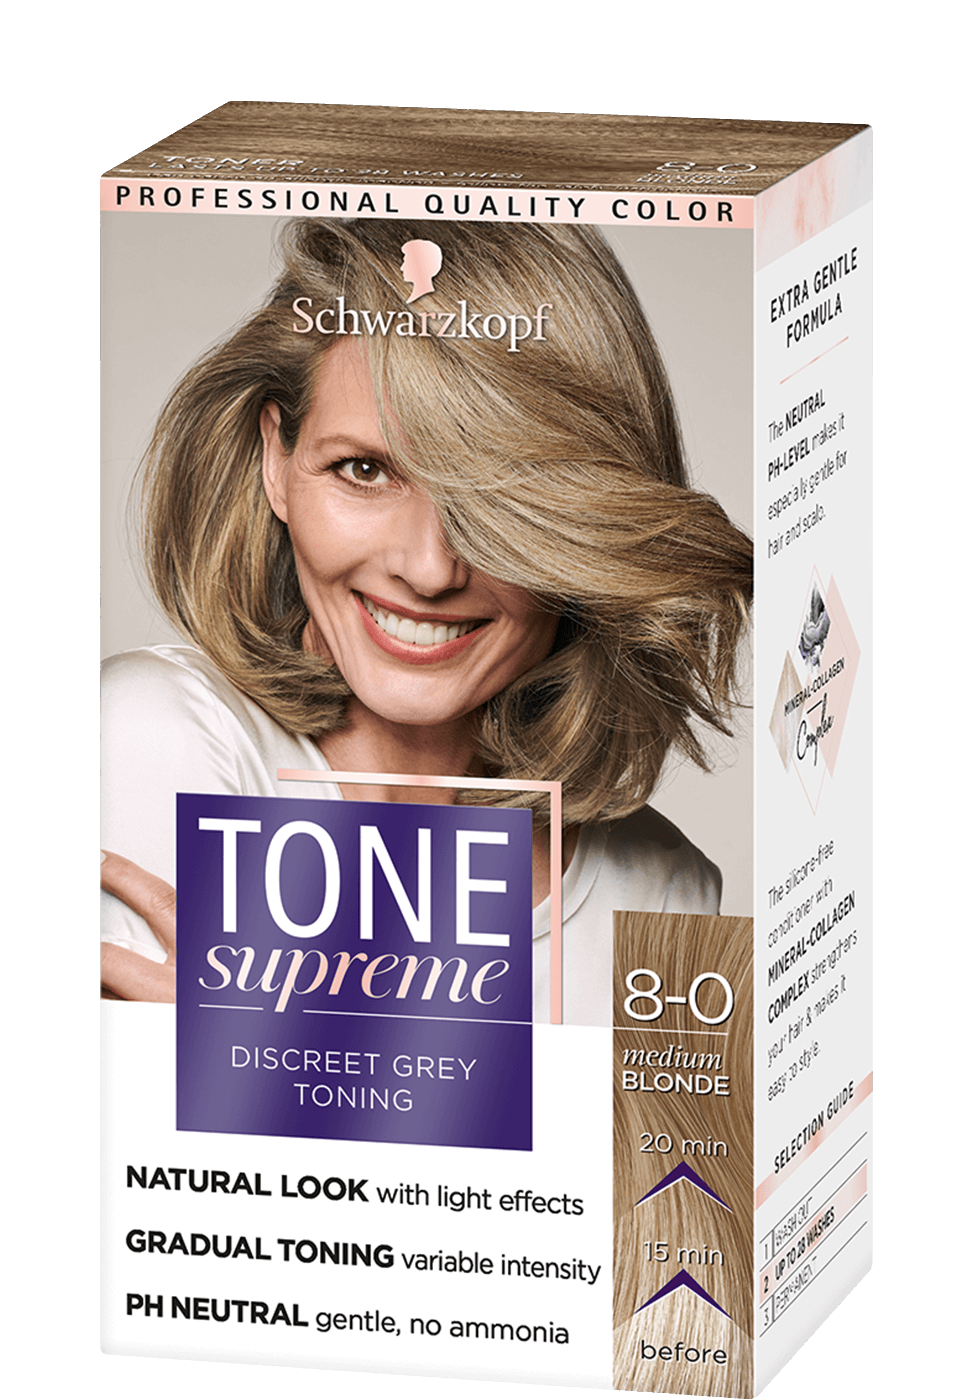 tone_supreme_int_baseline_8_0_medium_blone_970x1400